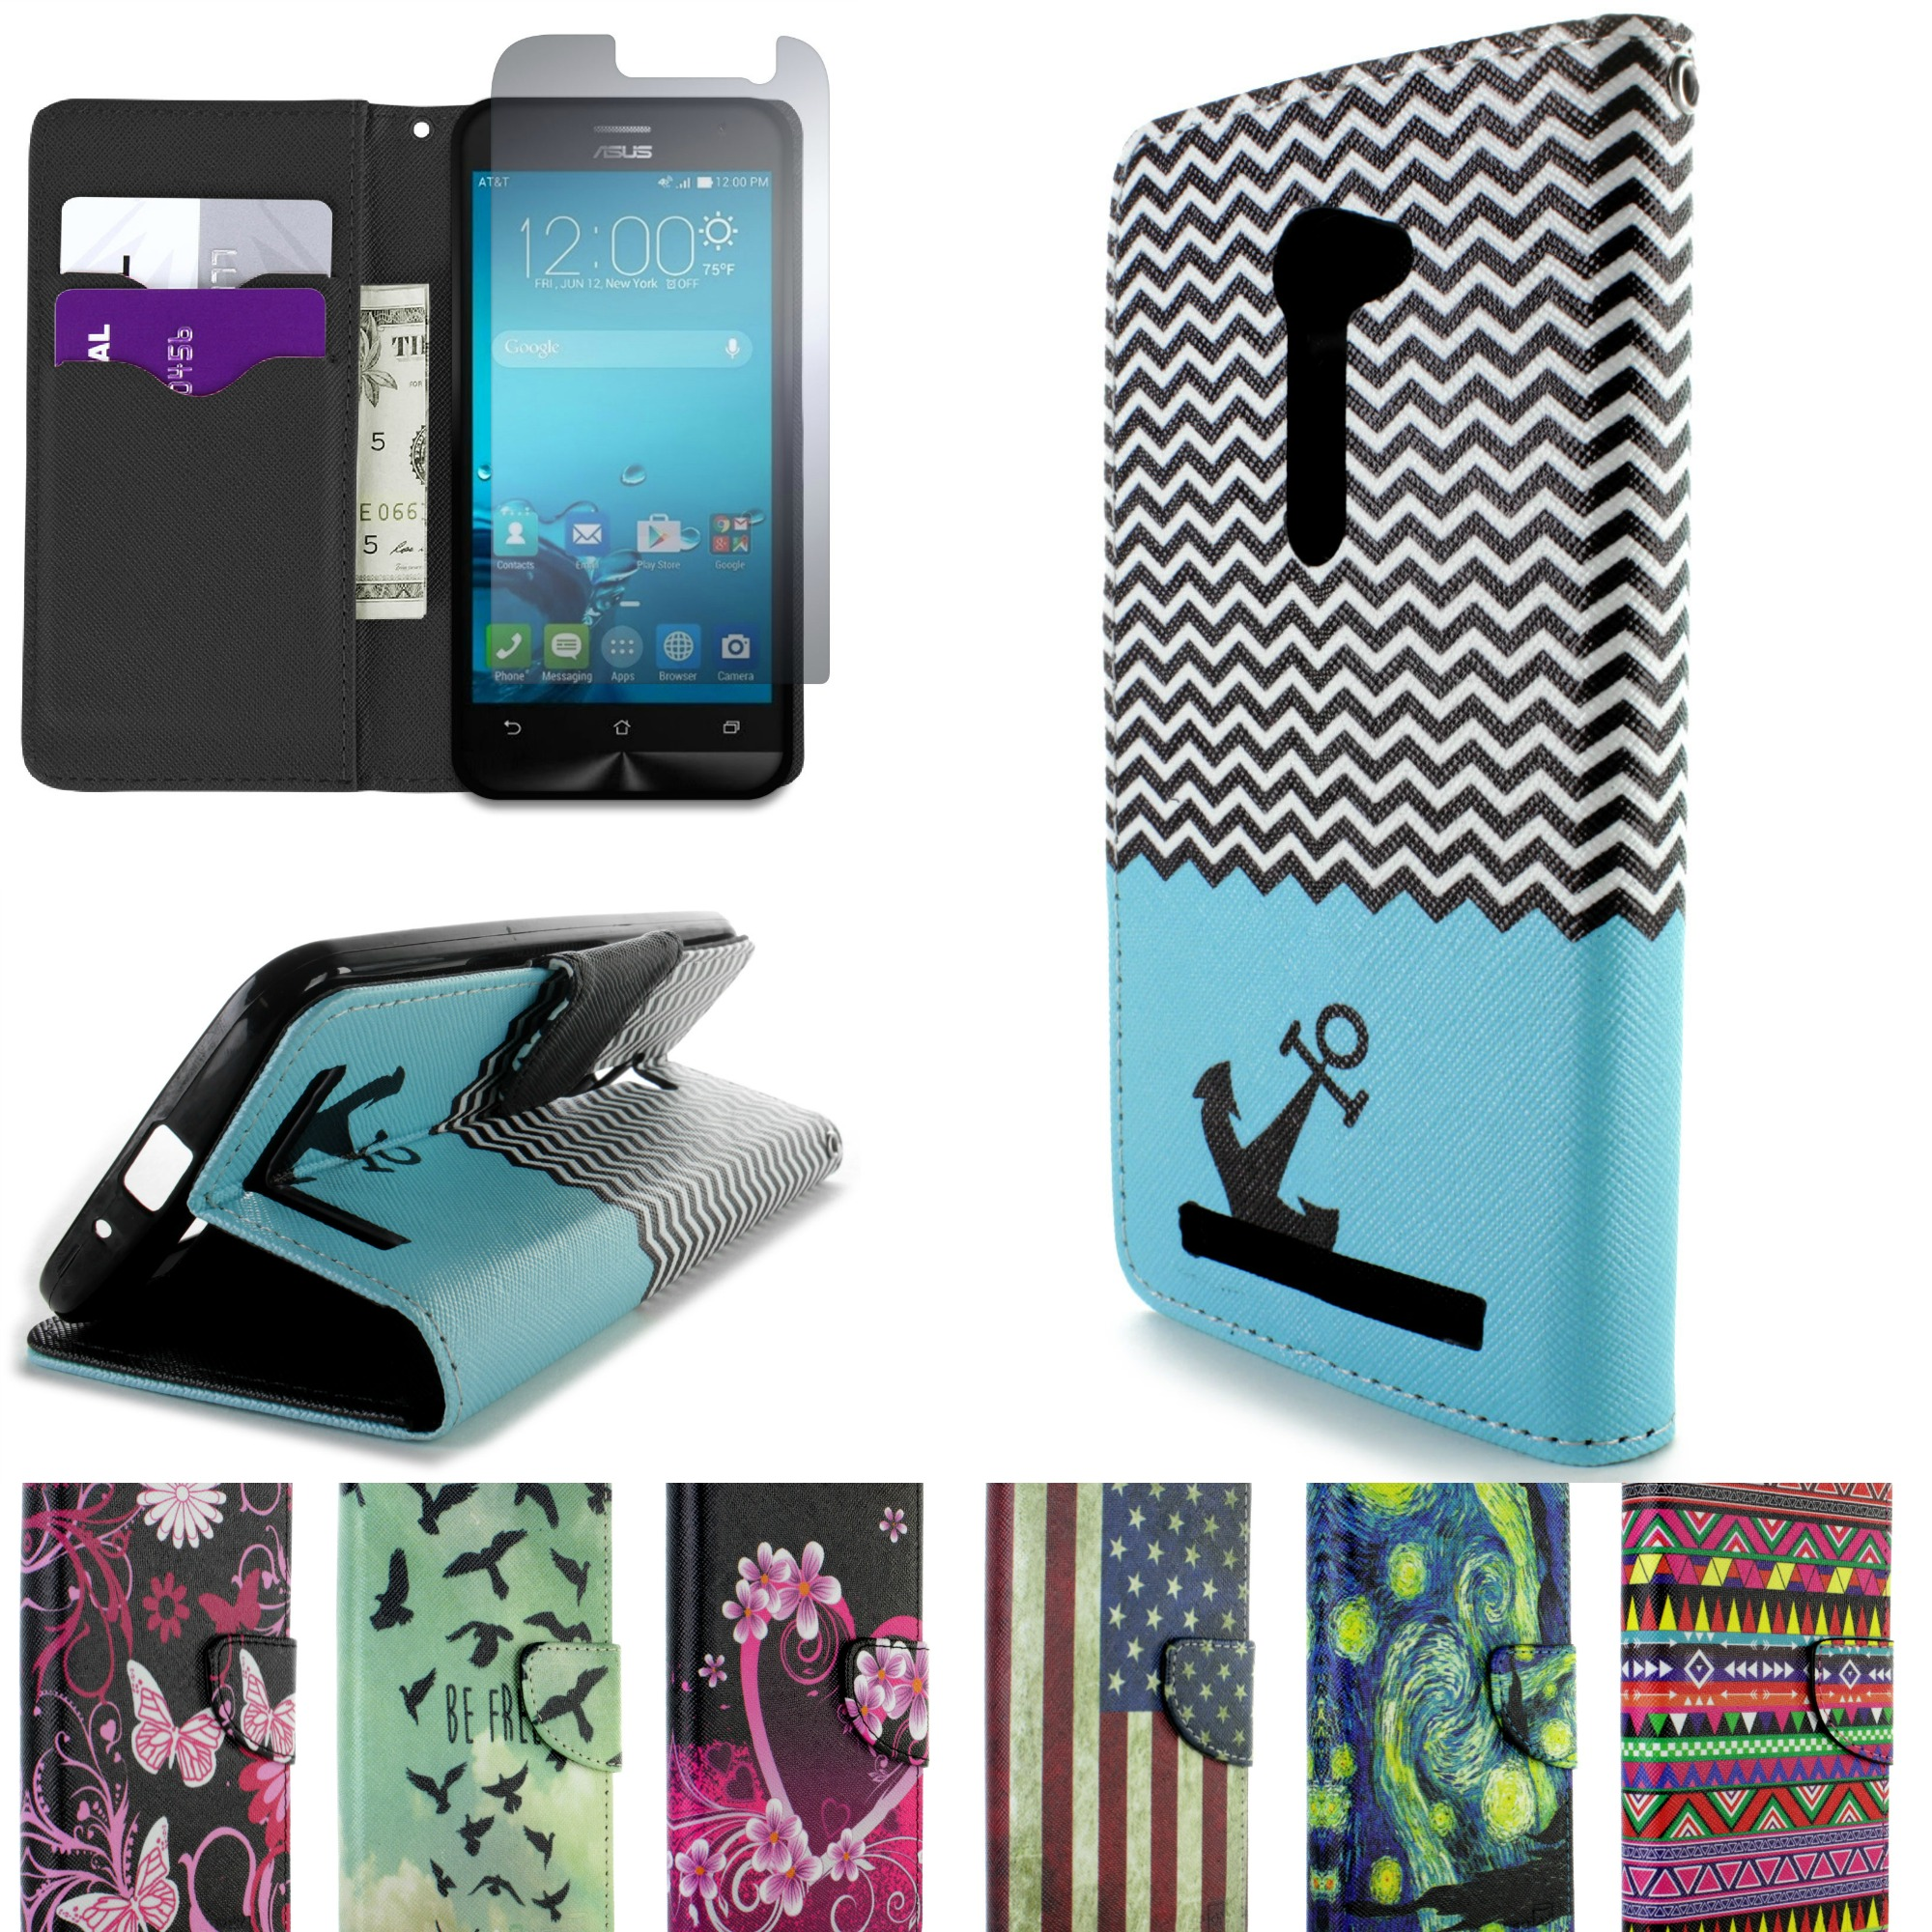 #35839623516648 For Asus Zenfone 2E 5.0 Case Folio Wallet Pouch Design Cover & Scre  Meest recente 2e Hands Design Meubels Friesland 691 pic 20002000691 Ontwerp